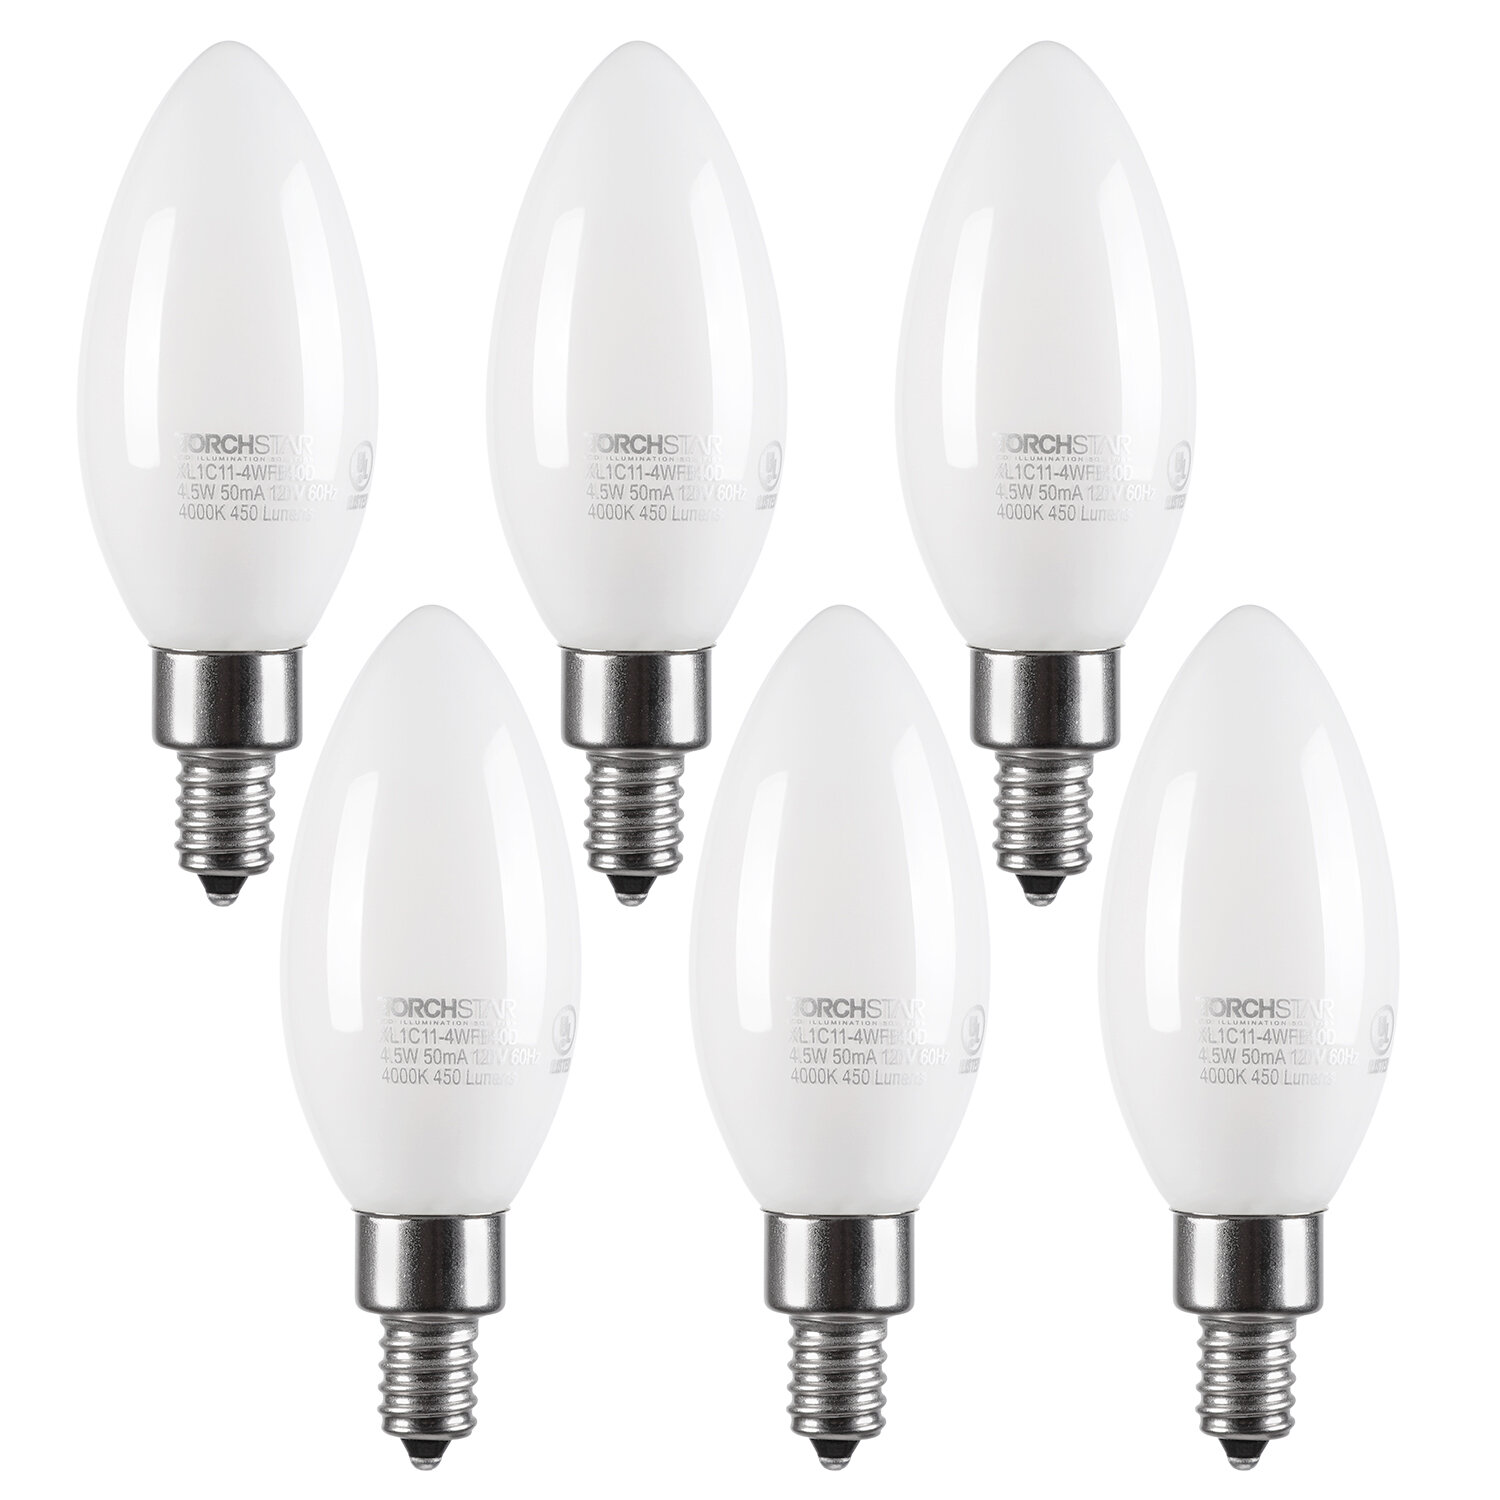 Candle Light Chandelier Lamp Non-dimmable Sharp Bulb Warm White LED Pro Durable